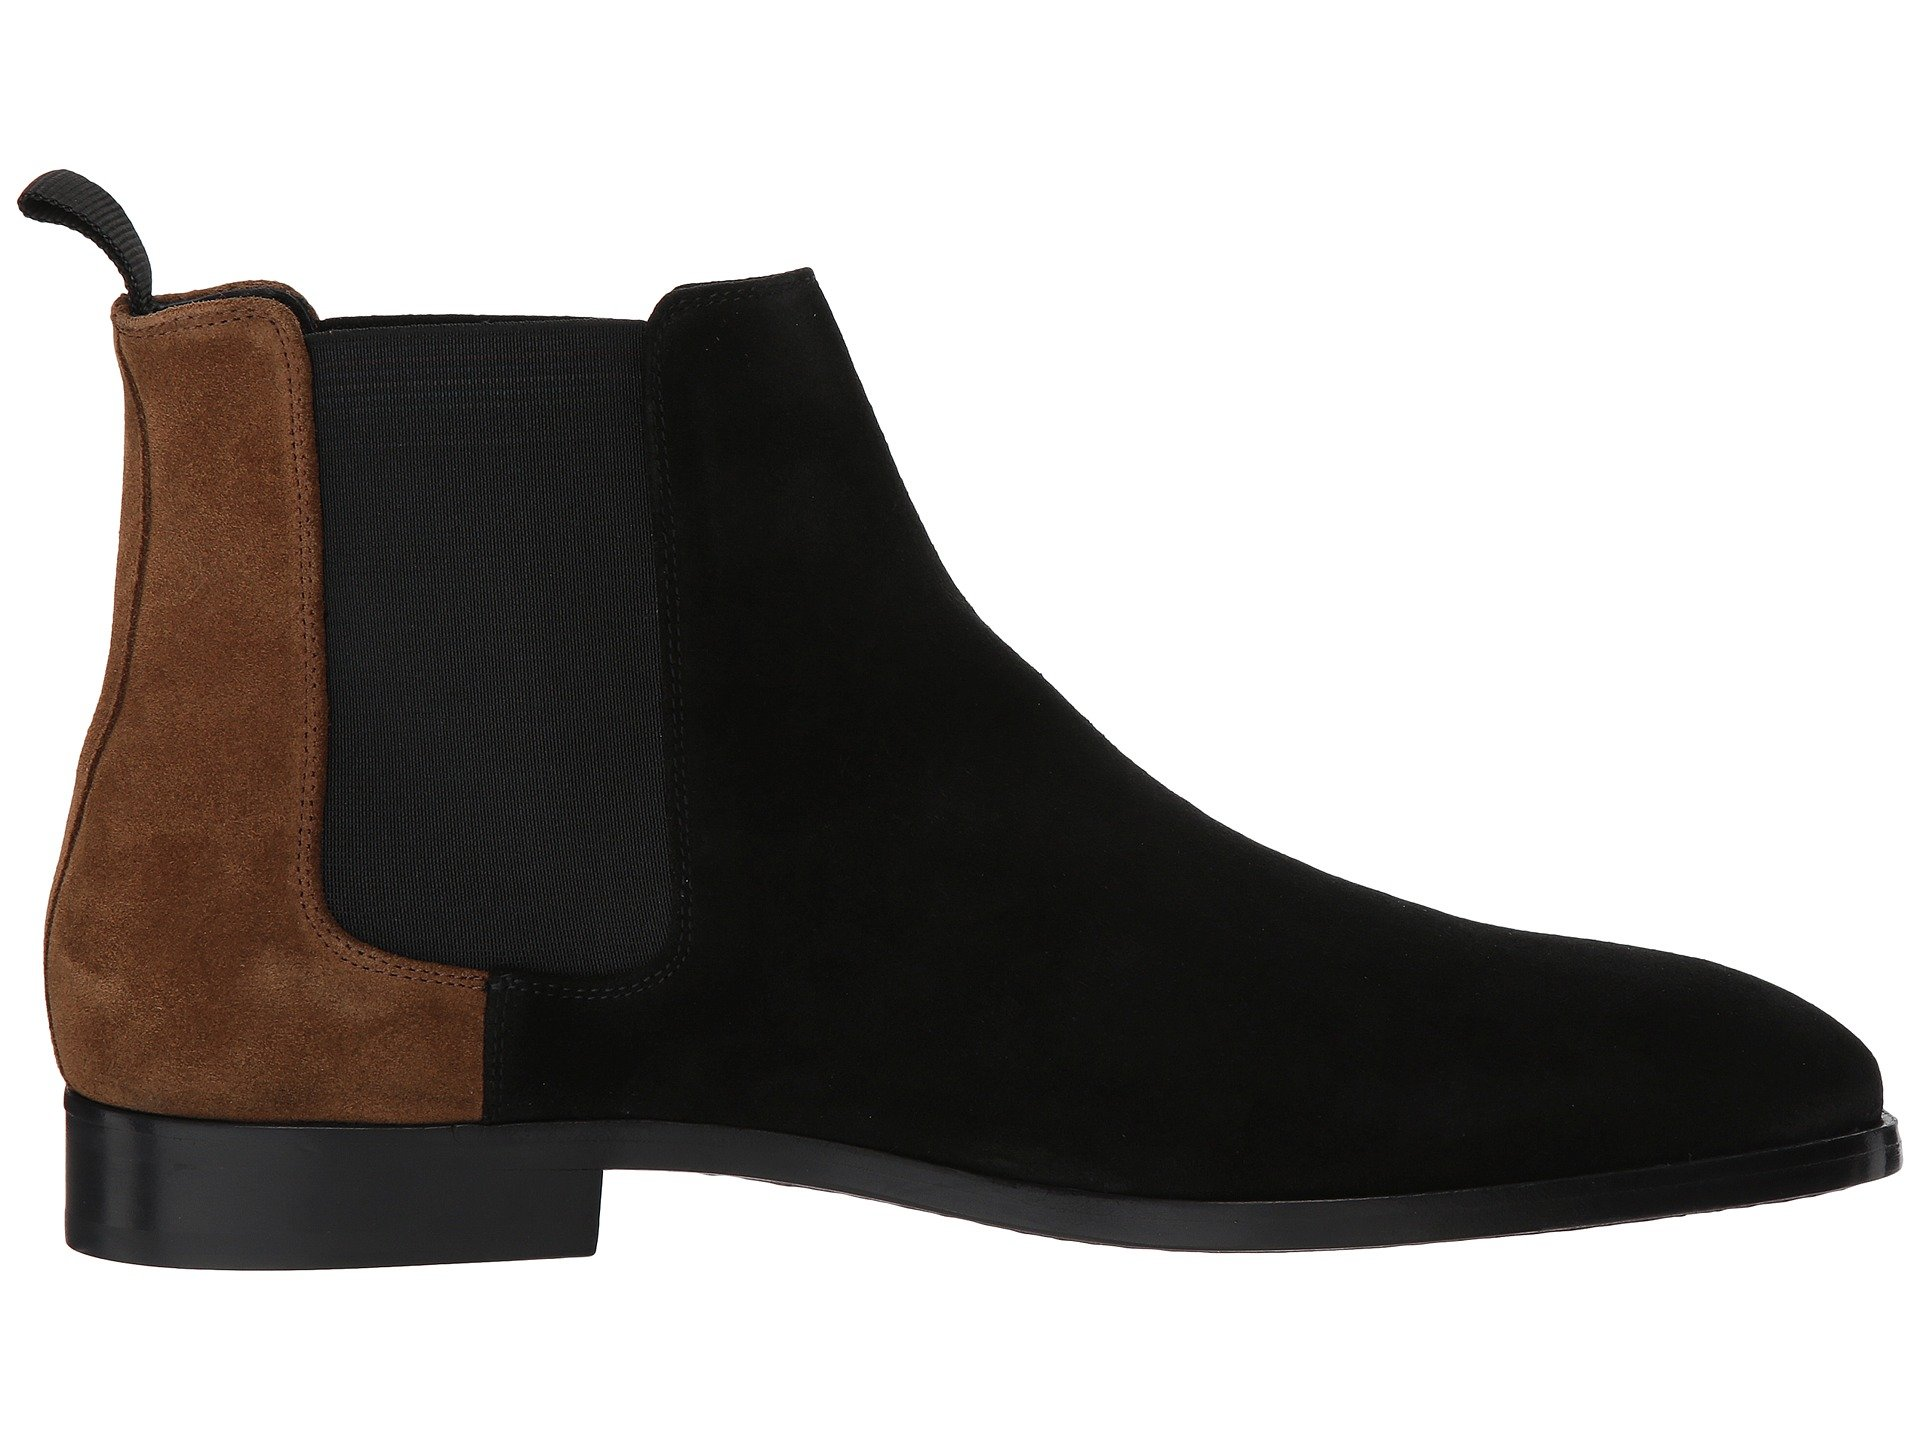 Paul Smith Gerald Black Boot Smith Paul H0w4qTH